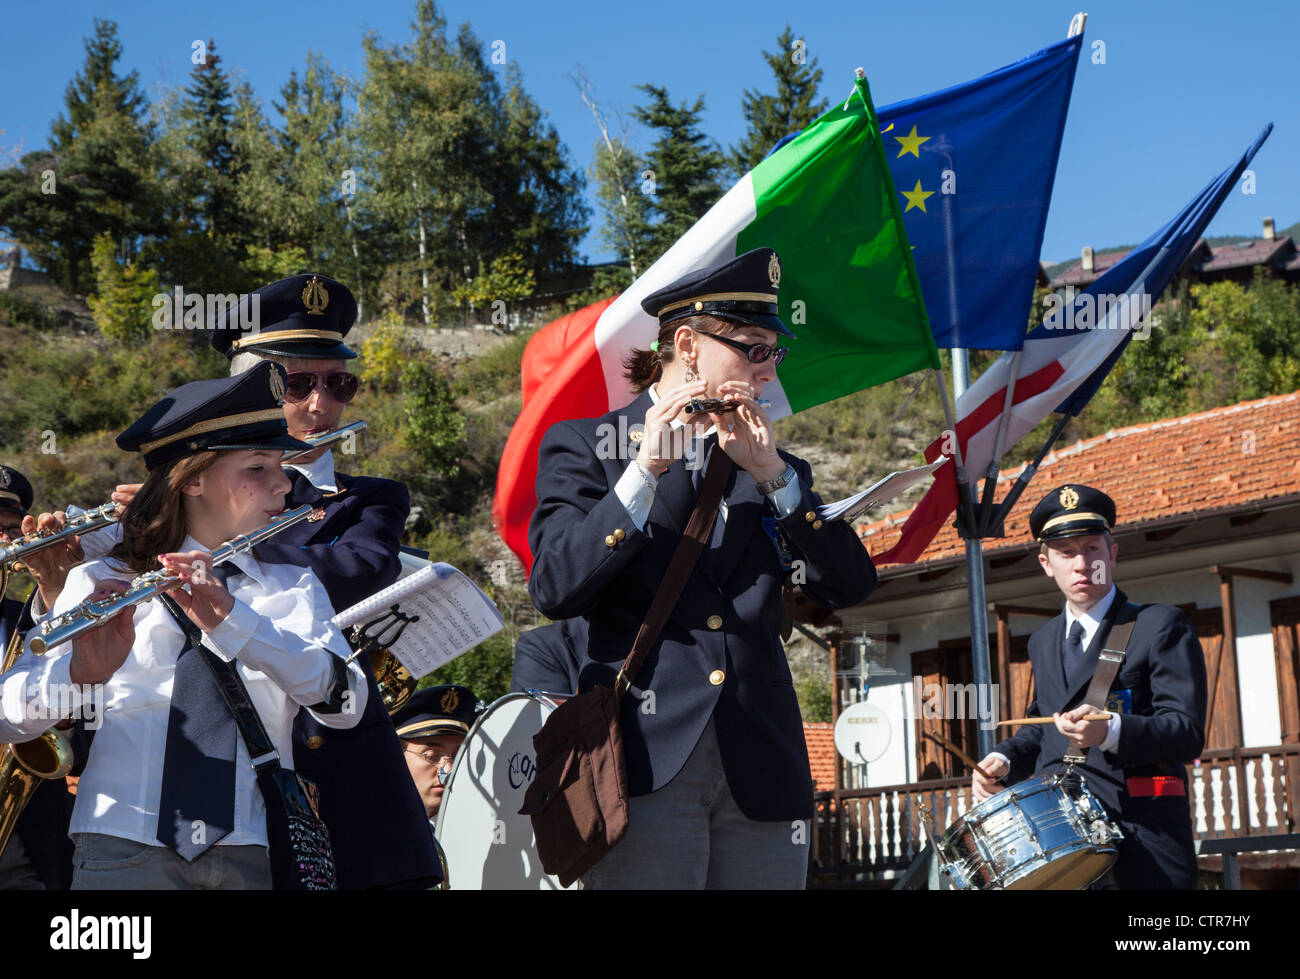 Italian town band playing music instruments at a festival in Oulx, Piemonte, Italy - Stock Image